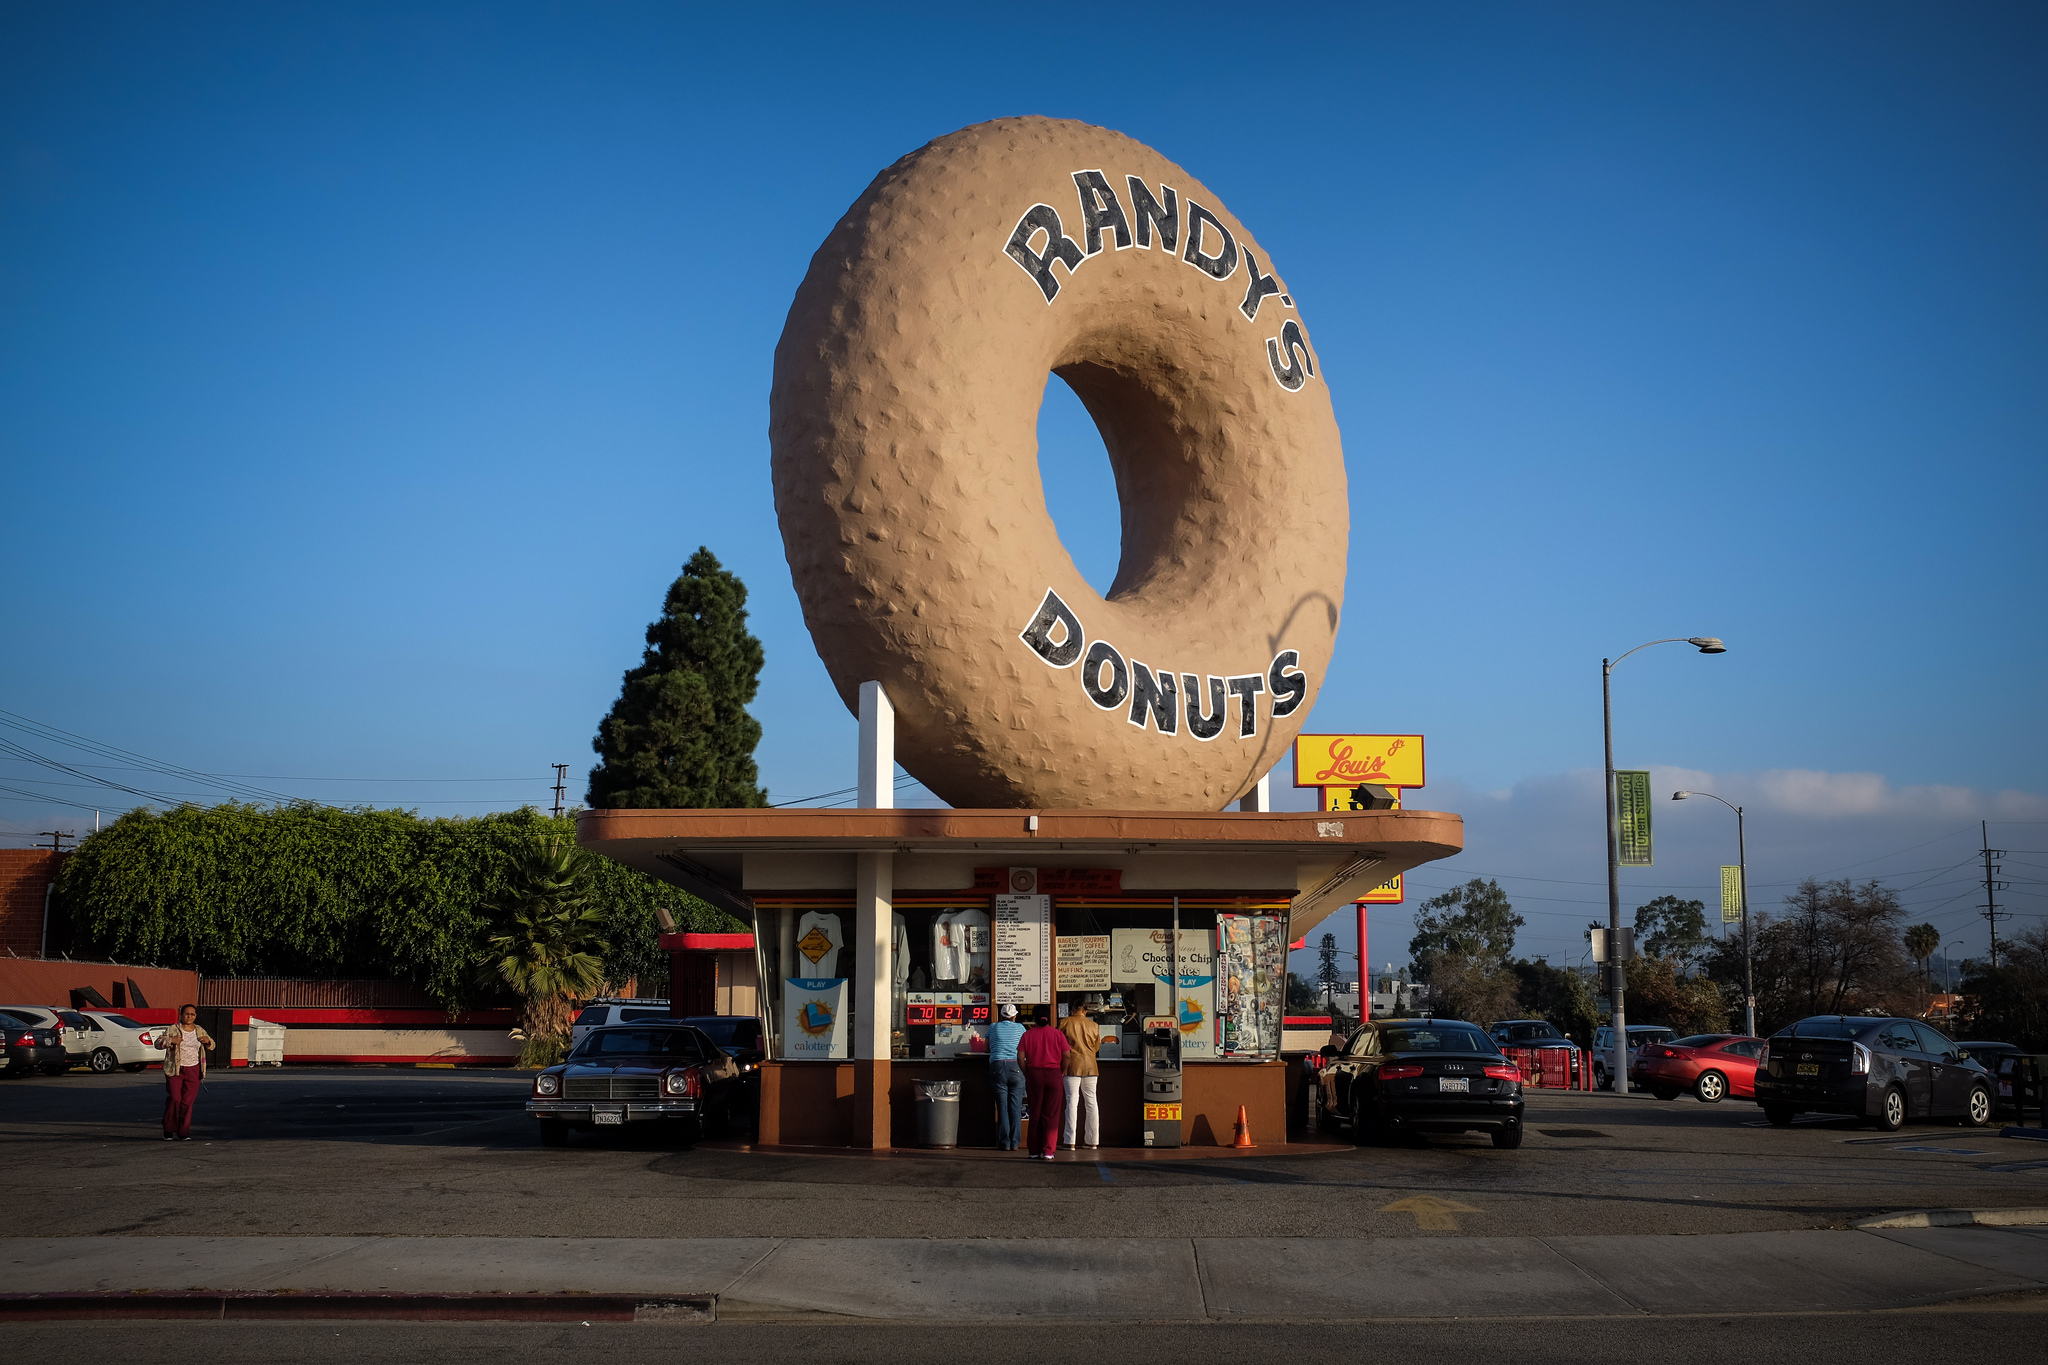 Randy's Donuts in Inglewood, Calif., near Los Angeles International Airport.